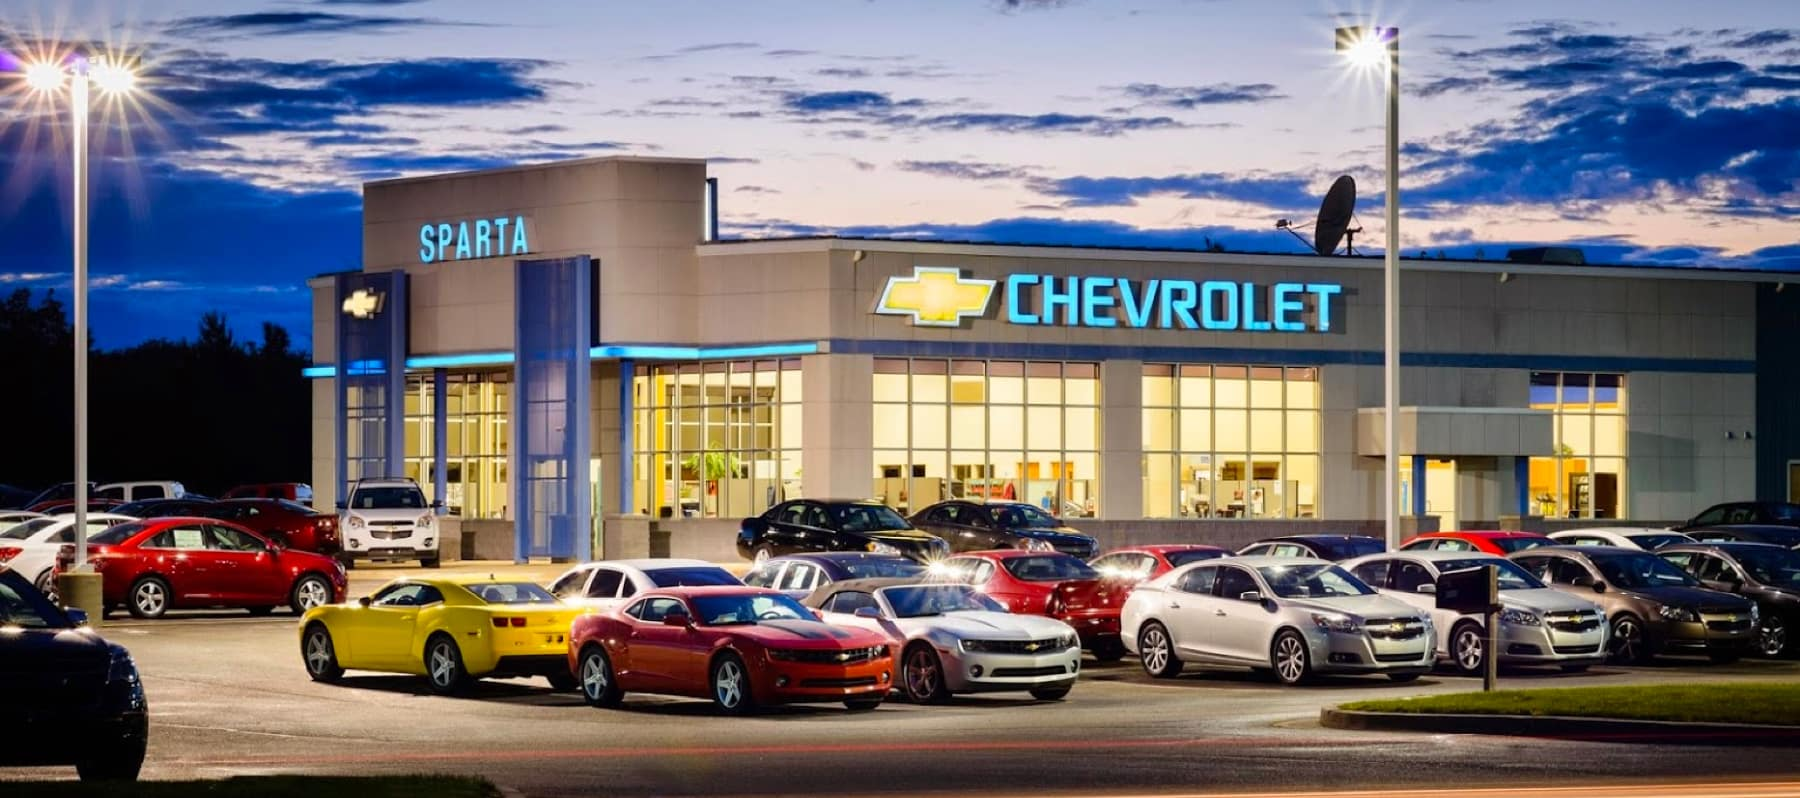 Sparta Chevrolet Store Front